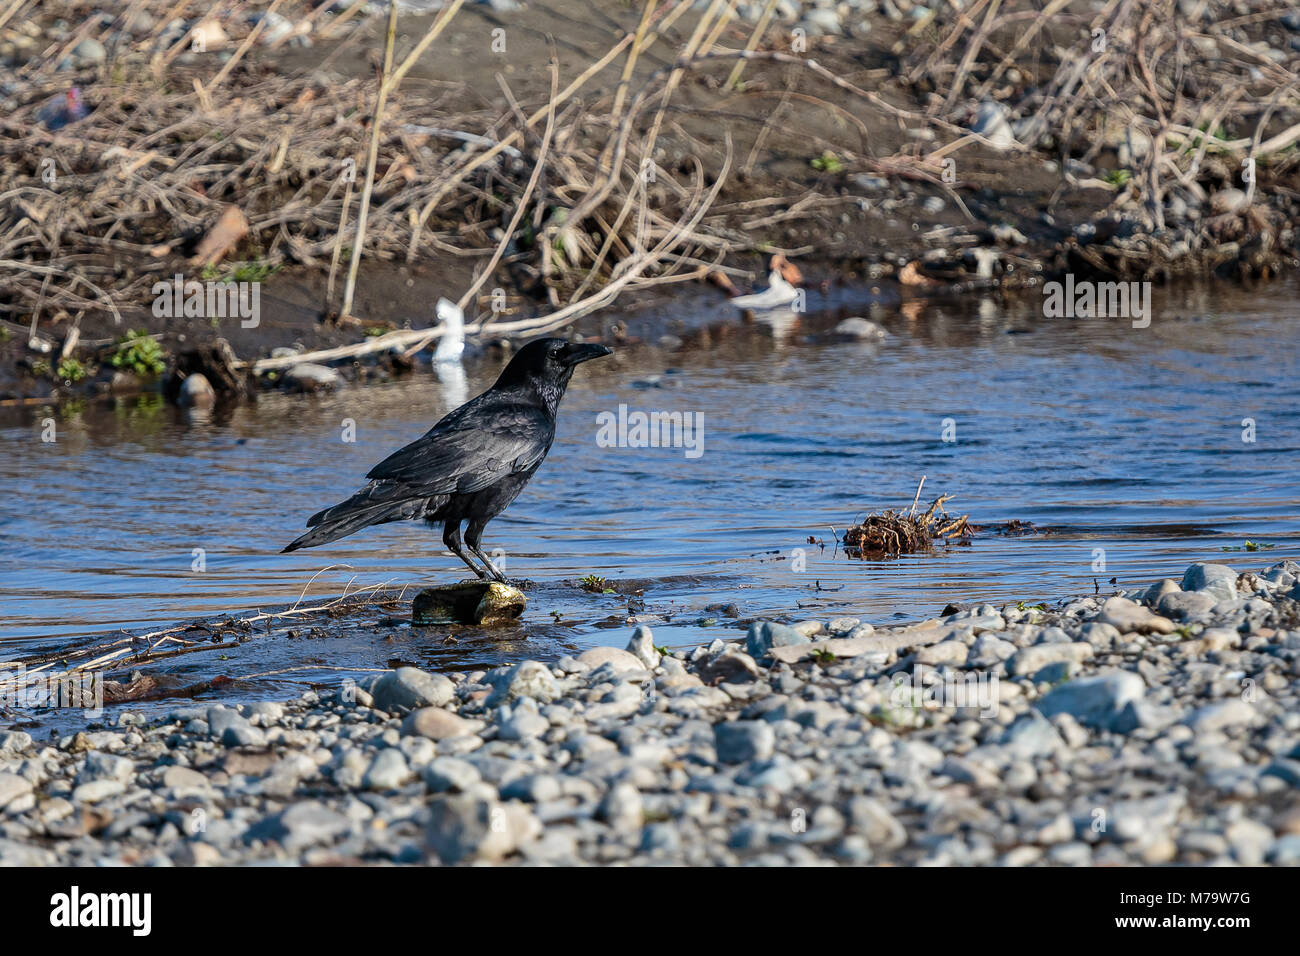 A jet black raven stands beside a small inlet on the shores of the Sagami River in Japan. Shot with copy space on - Stock Image